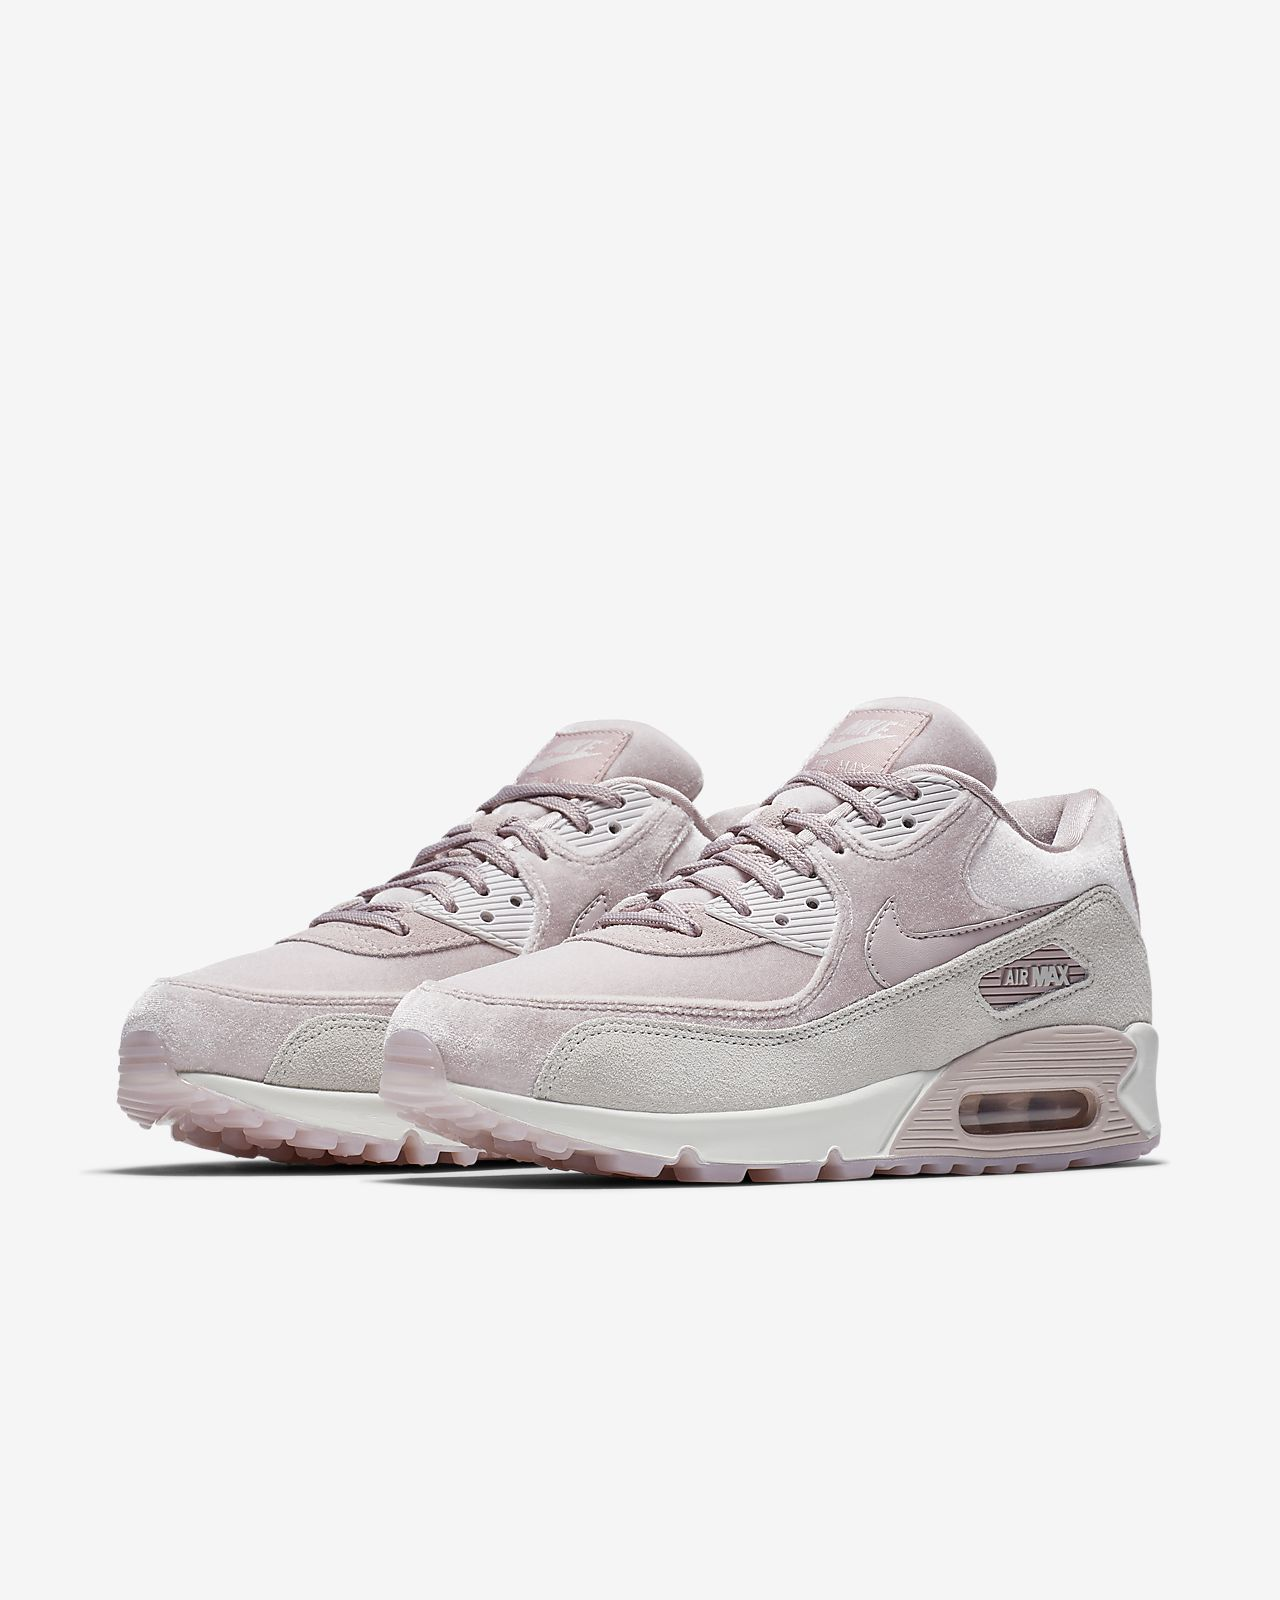 buy popular 5c3cd b6c90 ... Nike Air Max 90 LX Women s Shoe